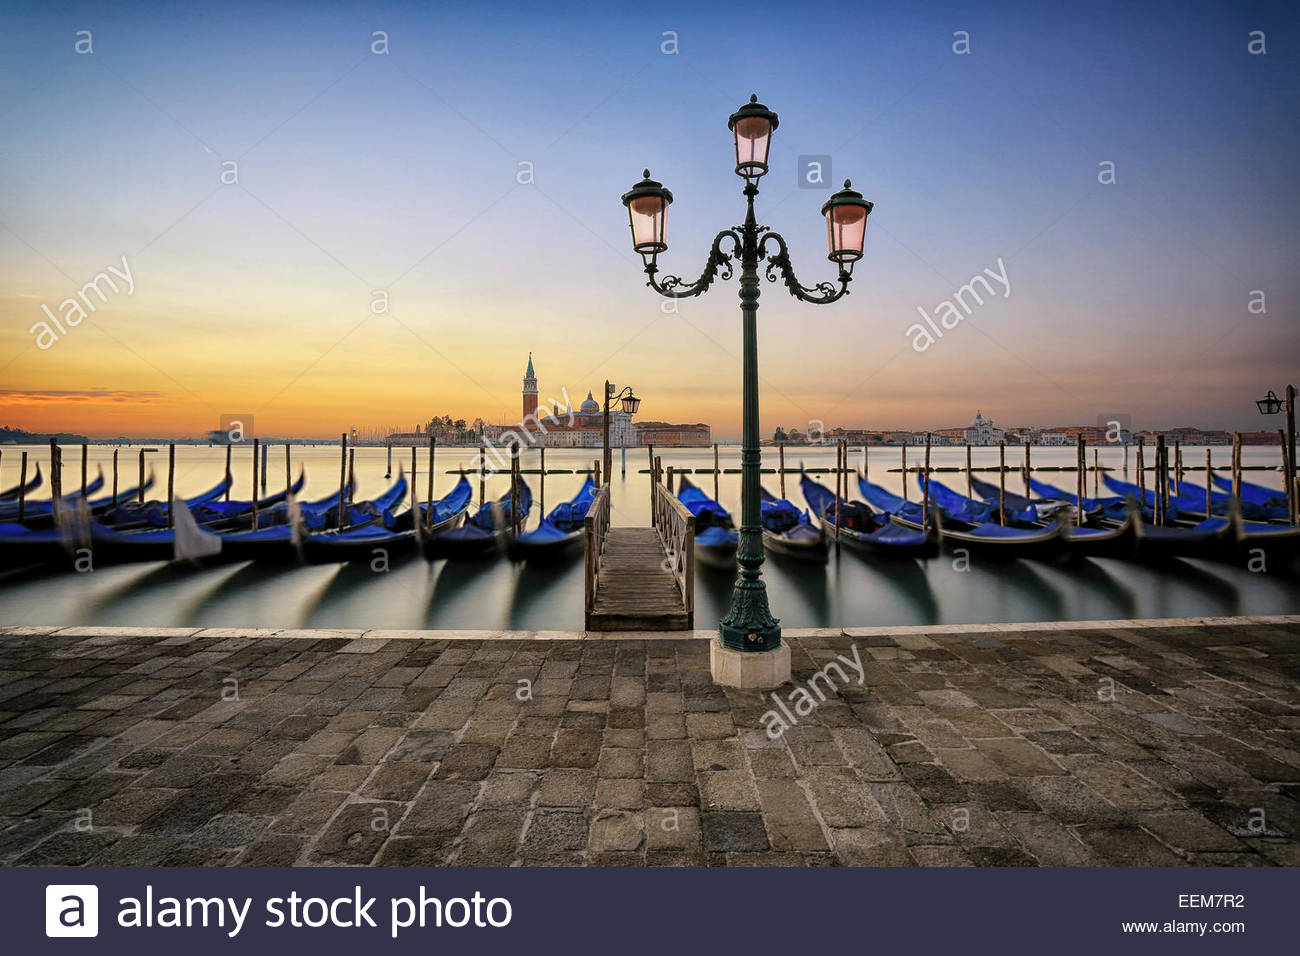 Italy, Venice, Sunrise in town - Stock Image